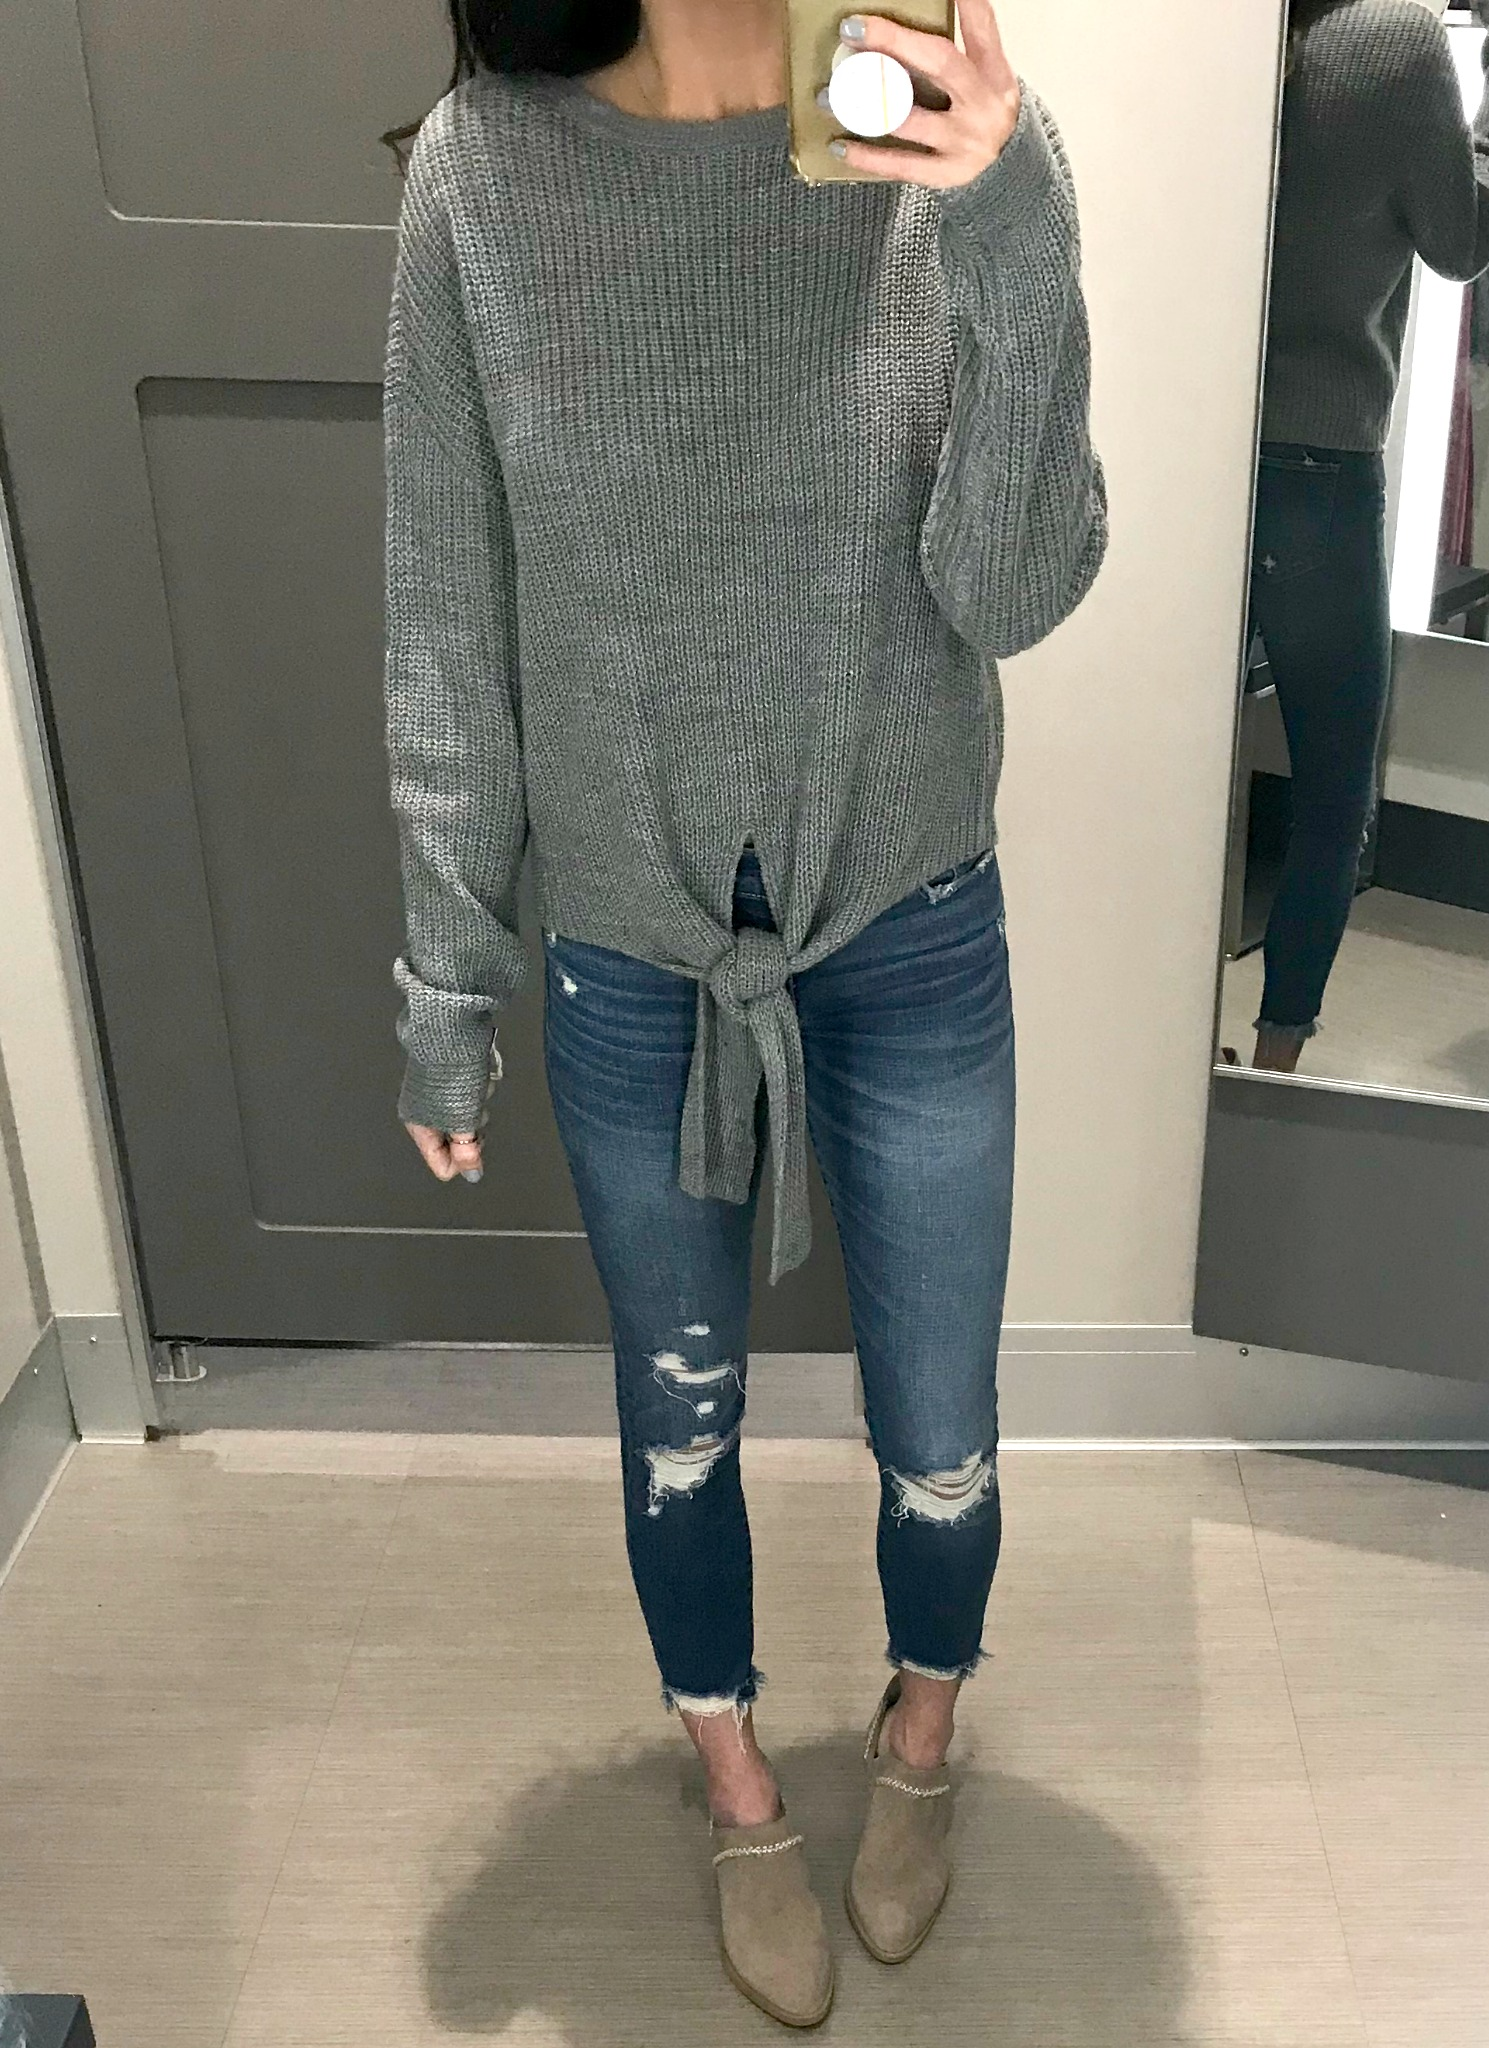 Target Sweater, Jeans and Booties